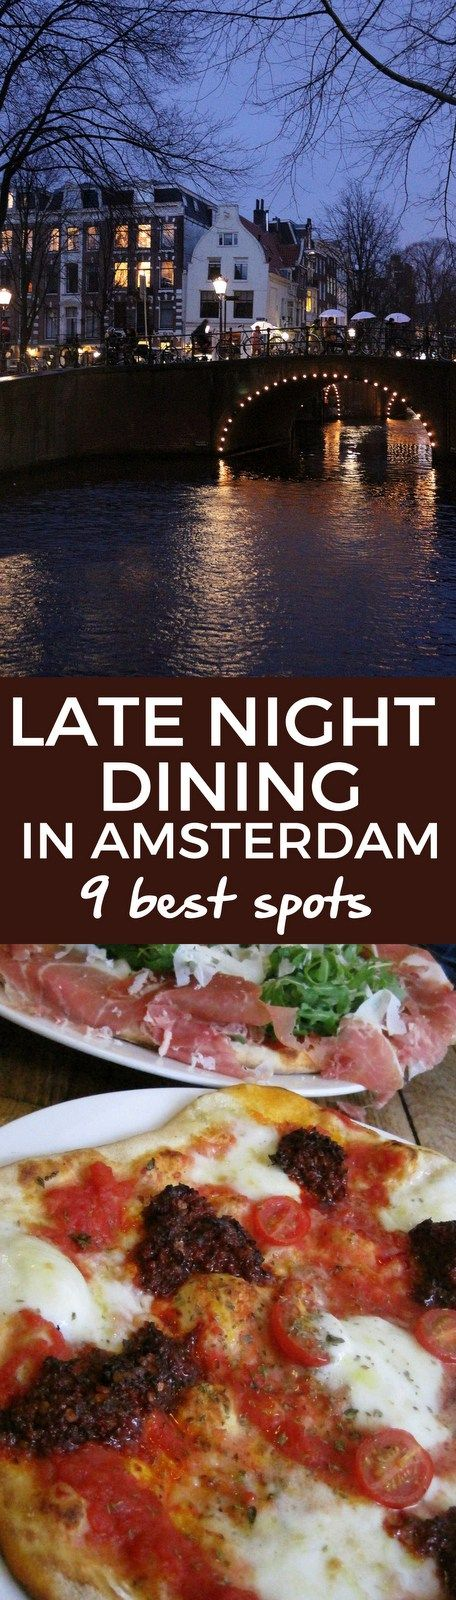 AMSTERDAM LATE NIGHT DINING OPTIONS - It's after 10pm. Where can you grab a meal and maybe a drink? Here are our top tips for restaurants open late in Amsterdam. #amsterdam #late #night #restaurants